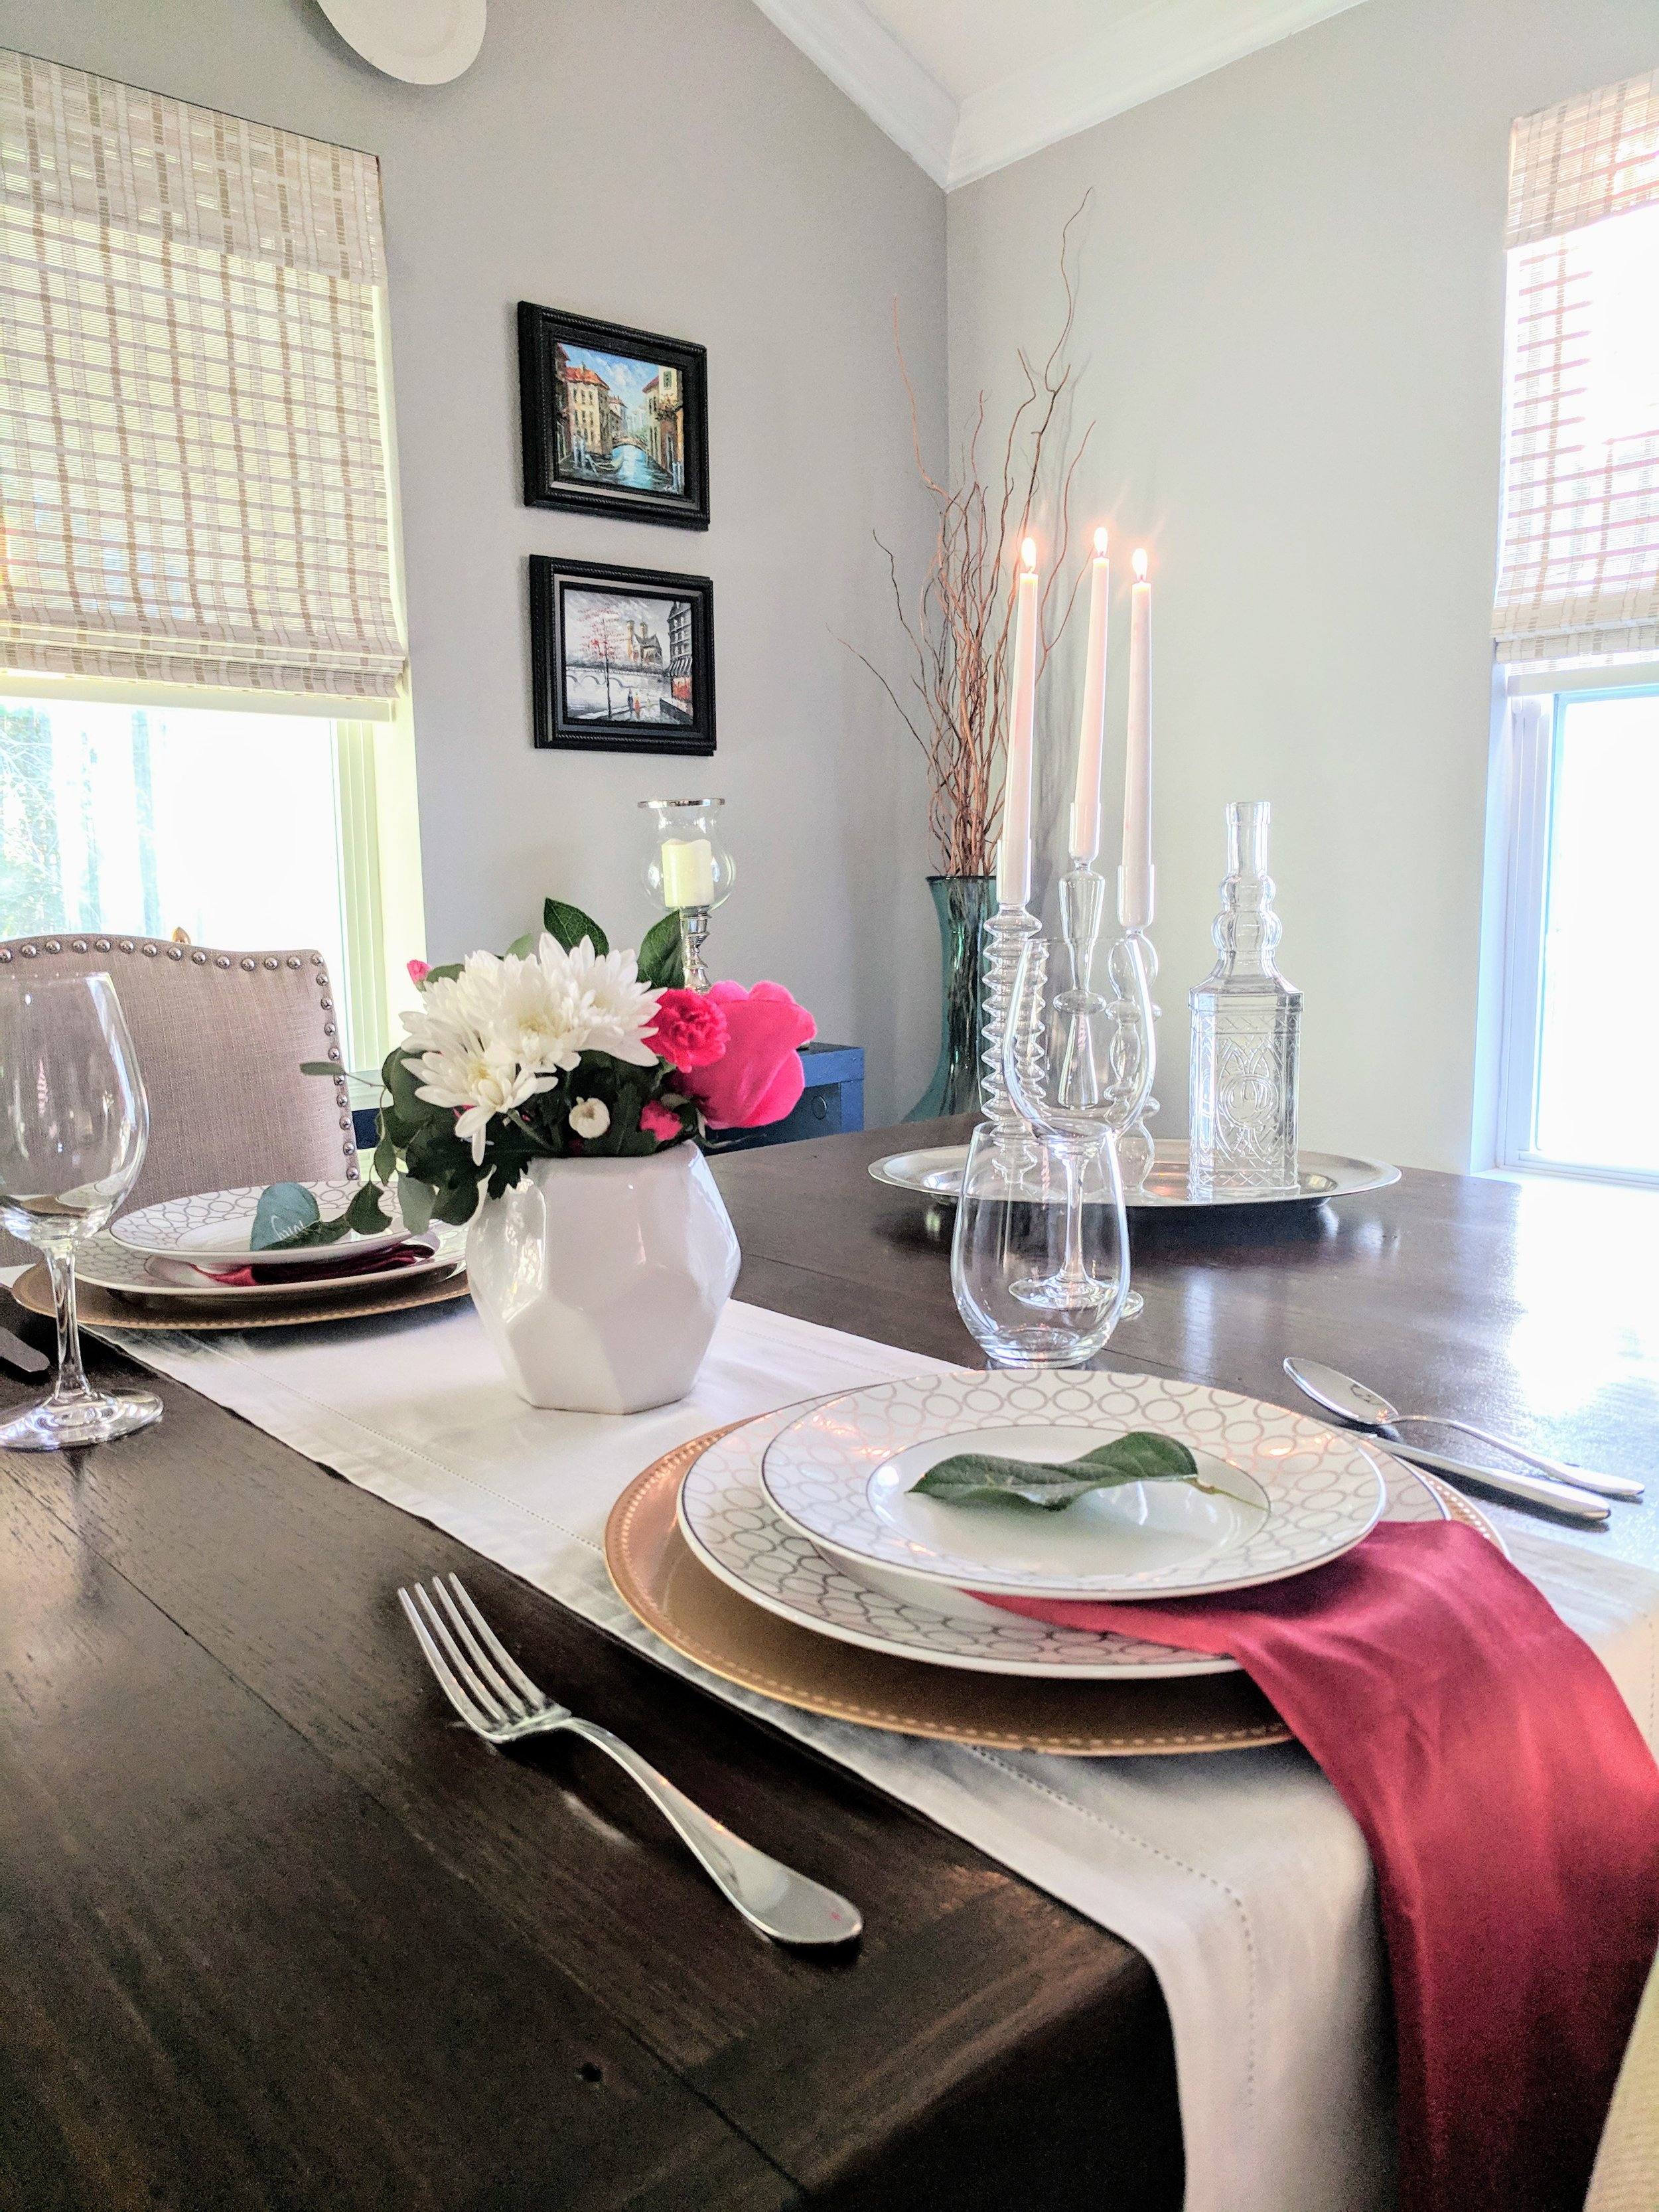 romantic tablesetting for two